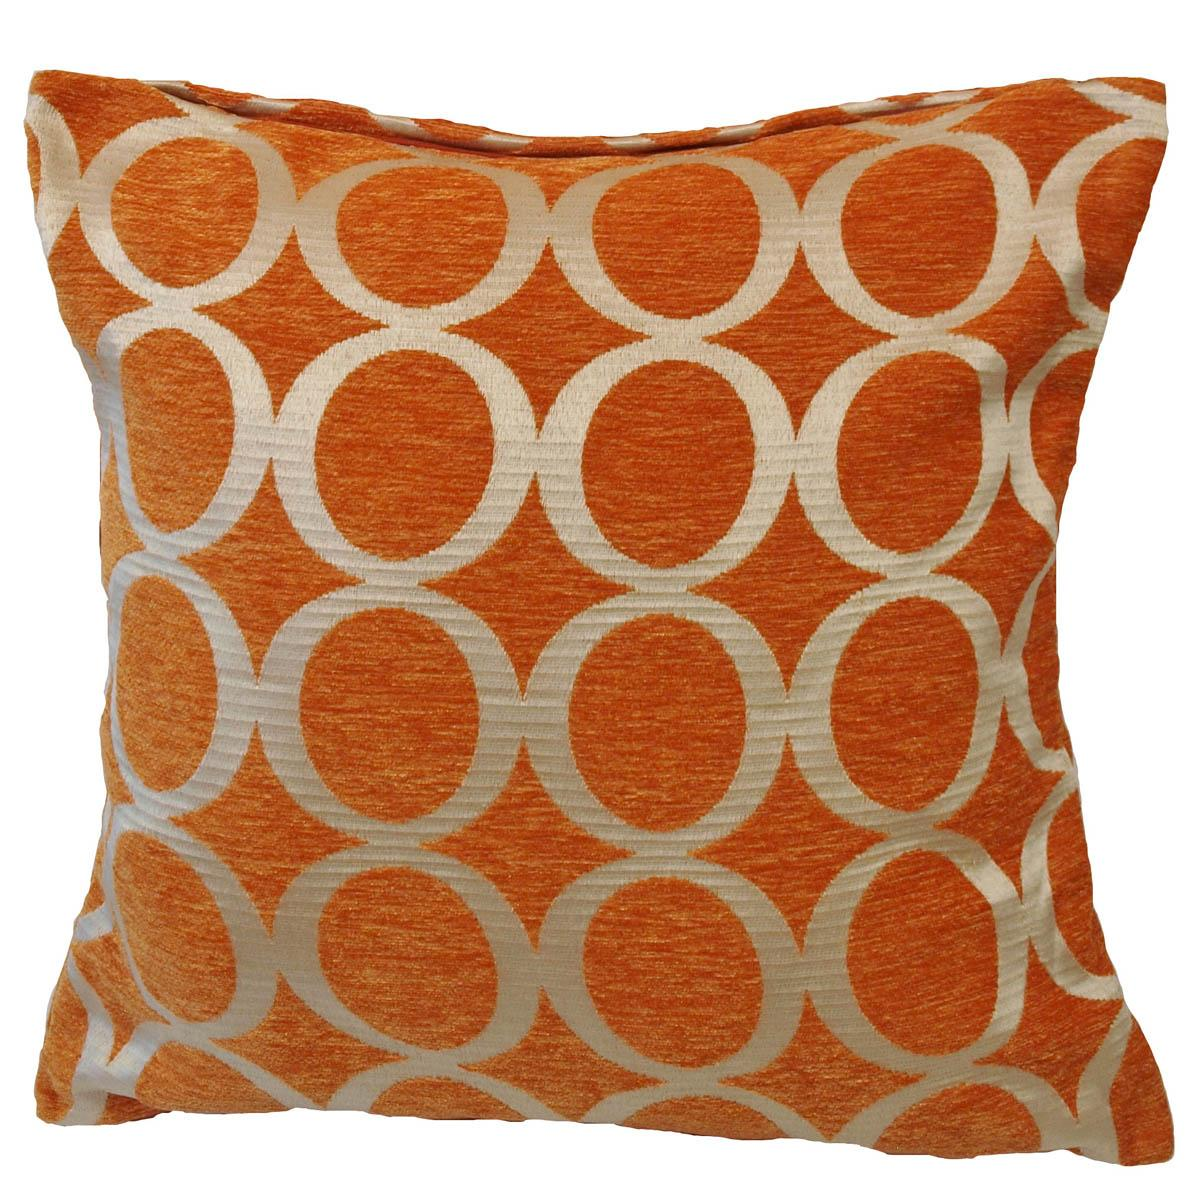 Oh filled cushion orange cheap cushions throws uk delivery - Orange kitchen chair cushions ...